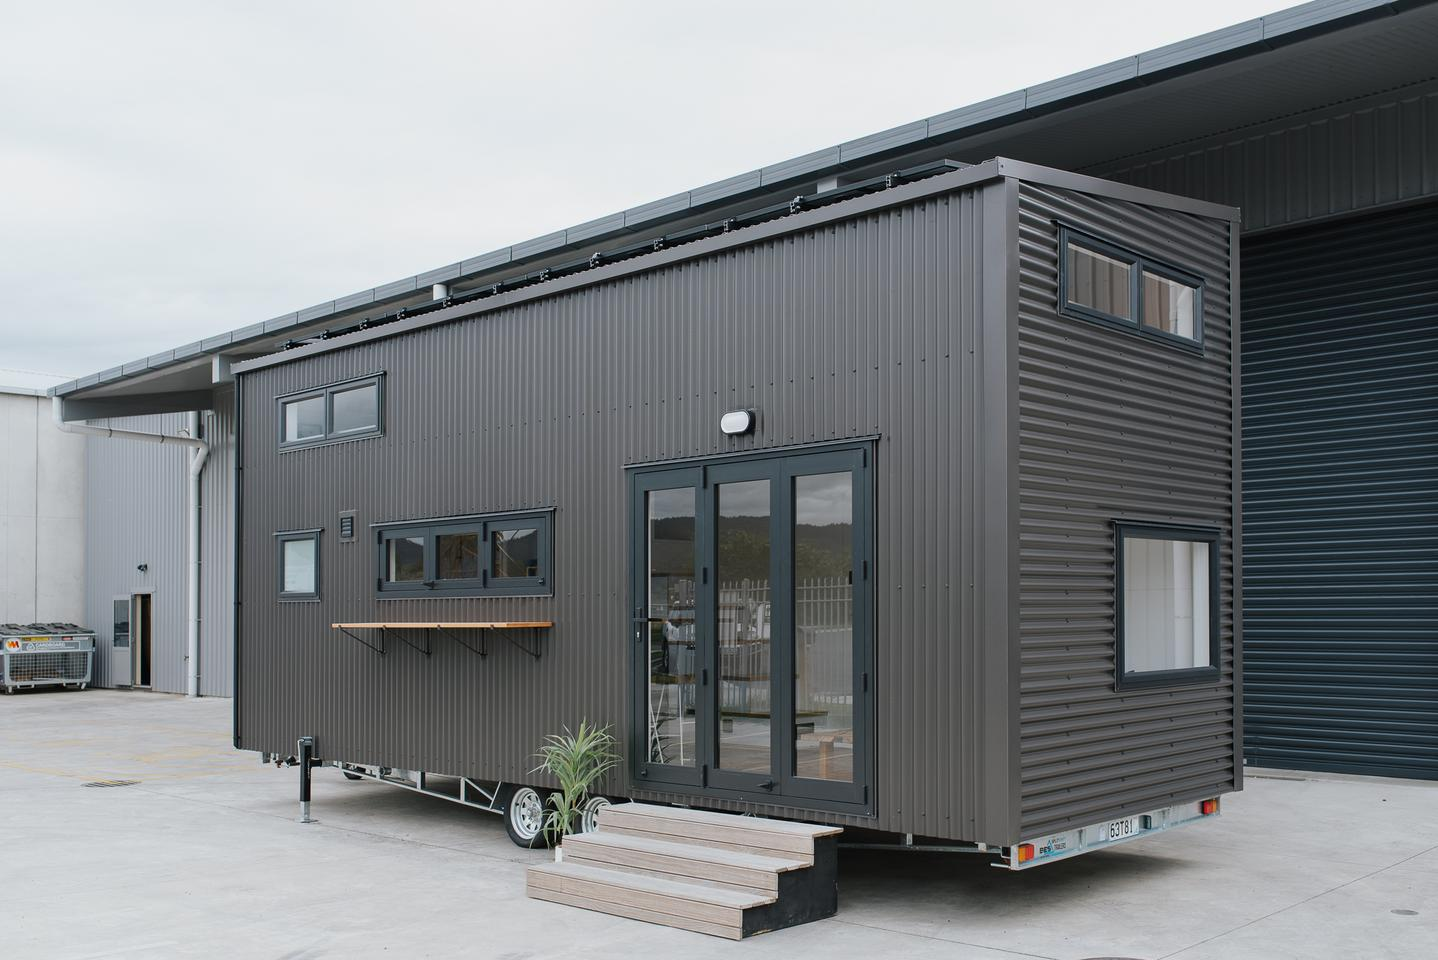 Cyril the Tiny House reaches a total length of 8 m (26 ft)